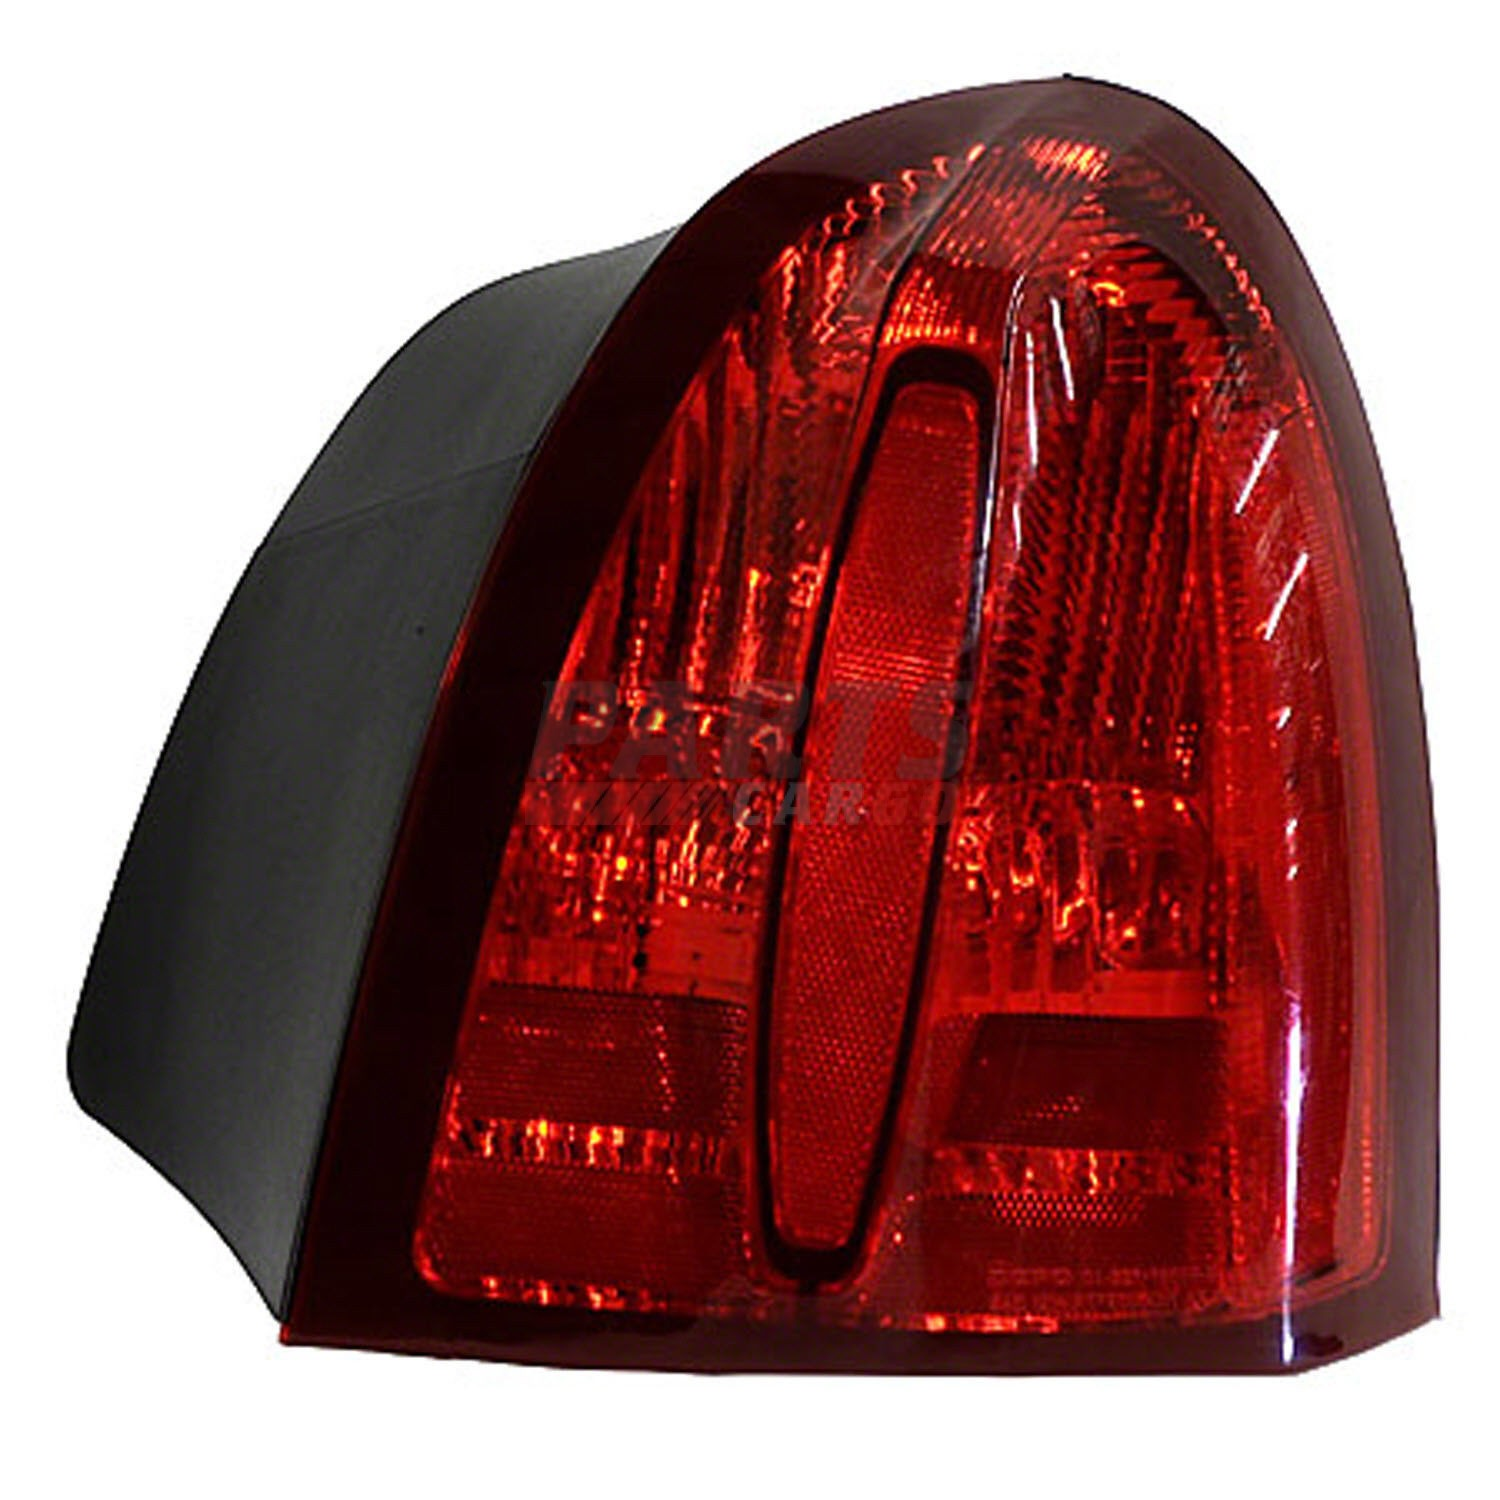 small resolution of details about new tail light assembly right side fits 1998 2002 lincoln town car xw1z13404ba